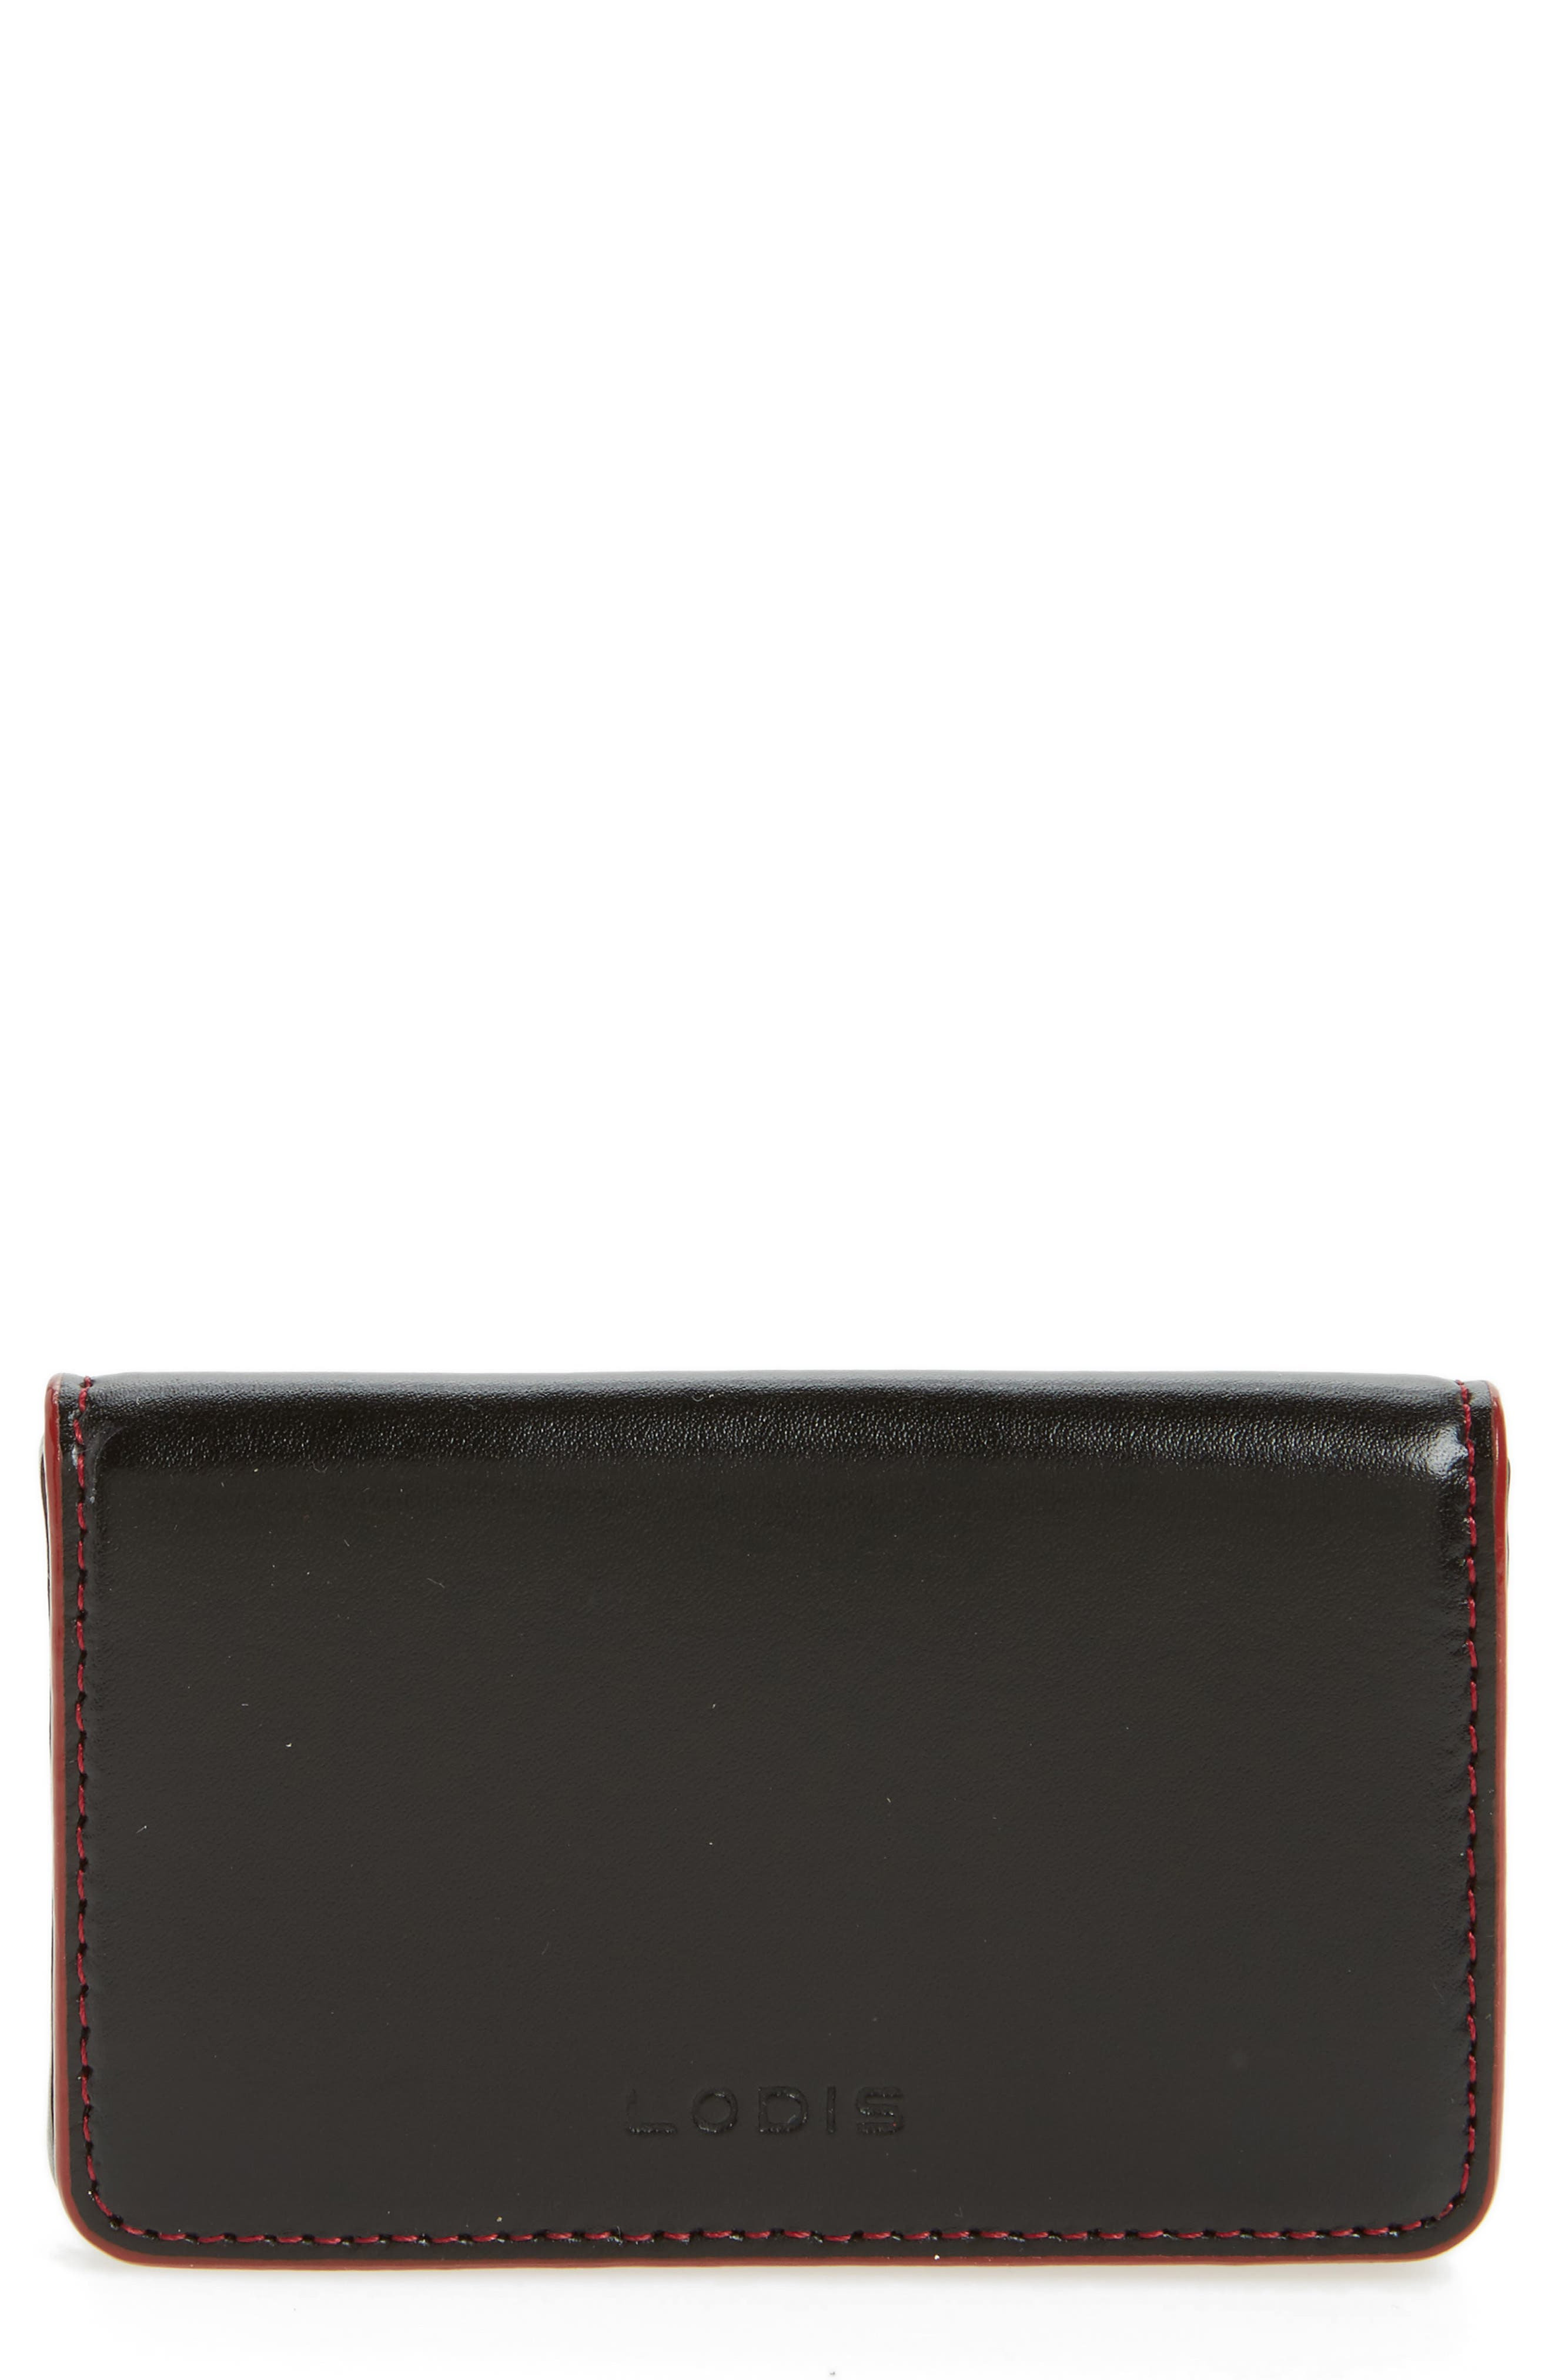 Alternate Image 1 Selected - Lodis Audrey Under Lock & Key Leather Mini Card Case